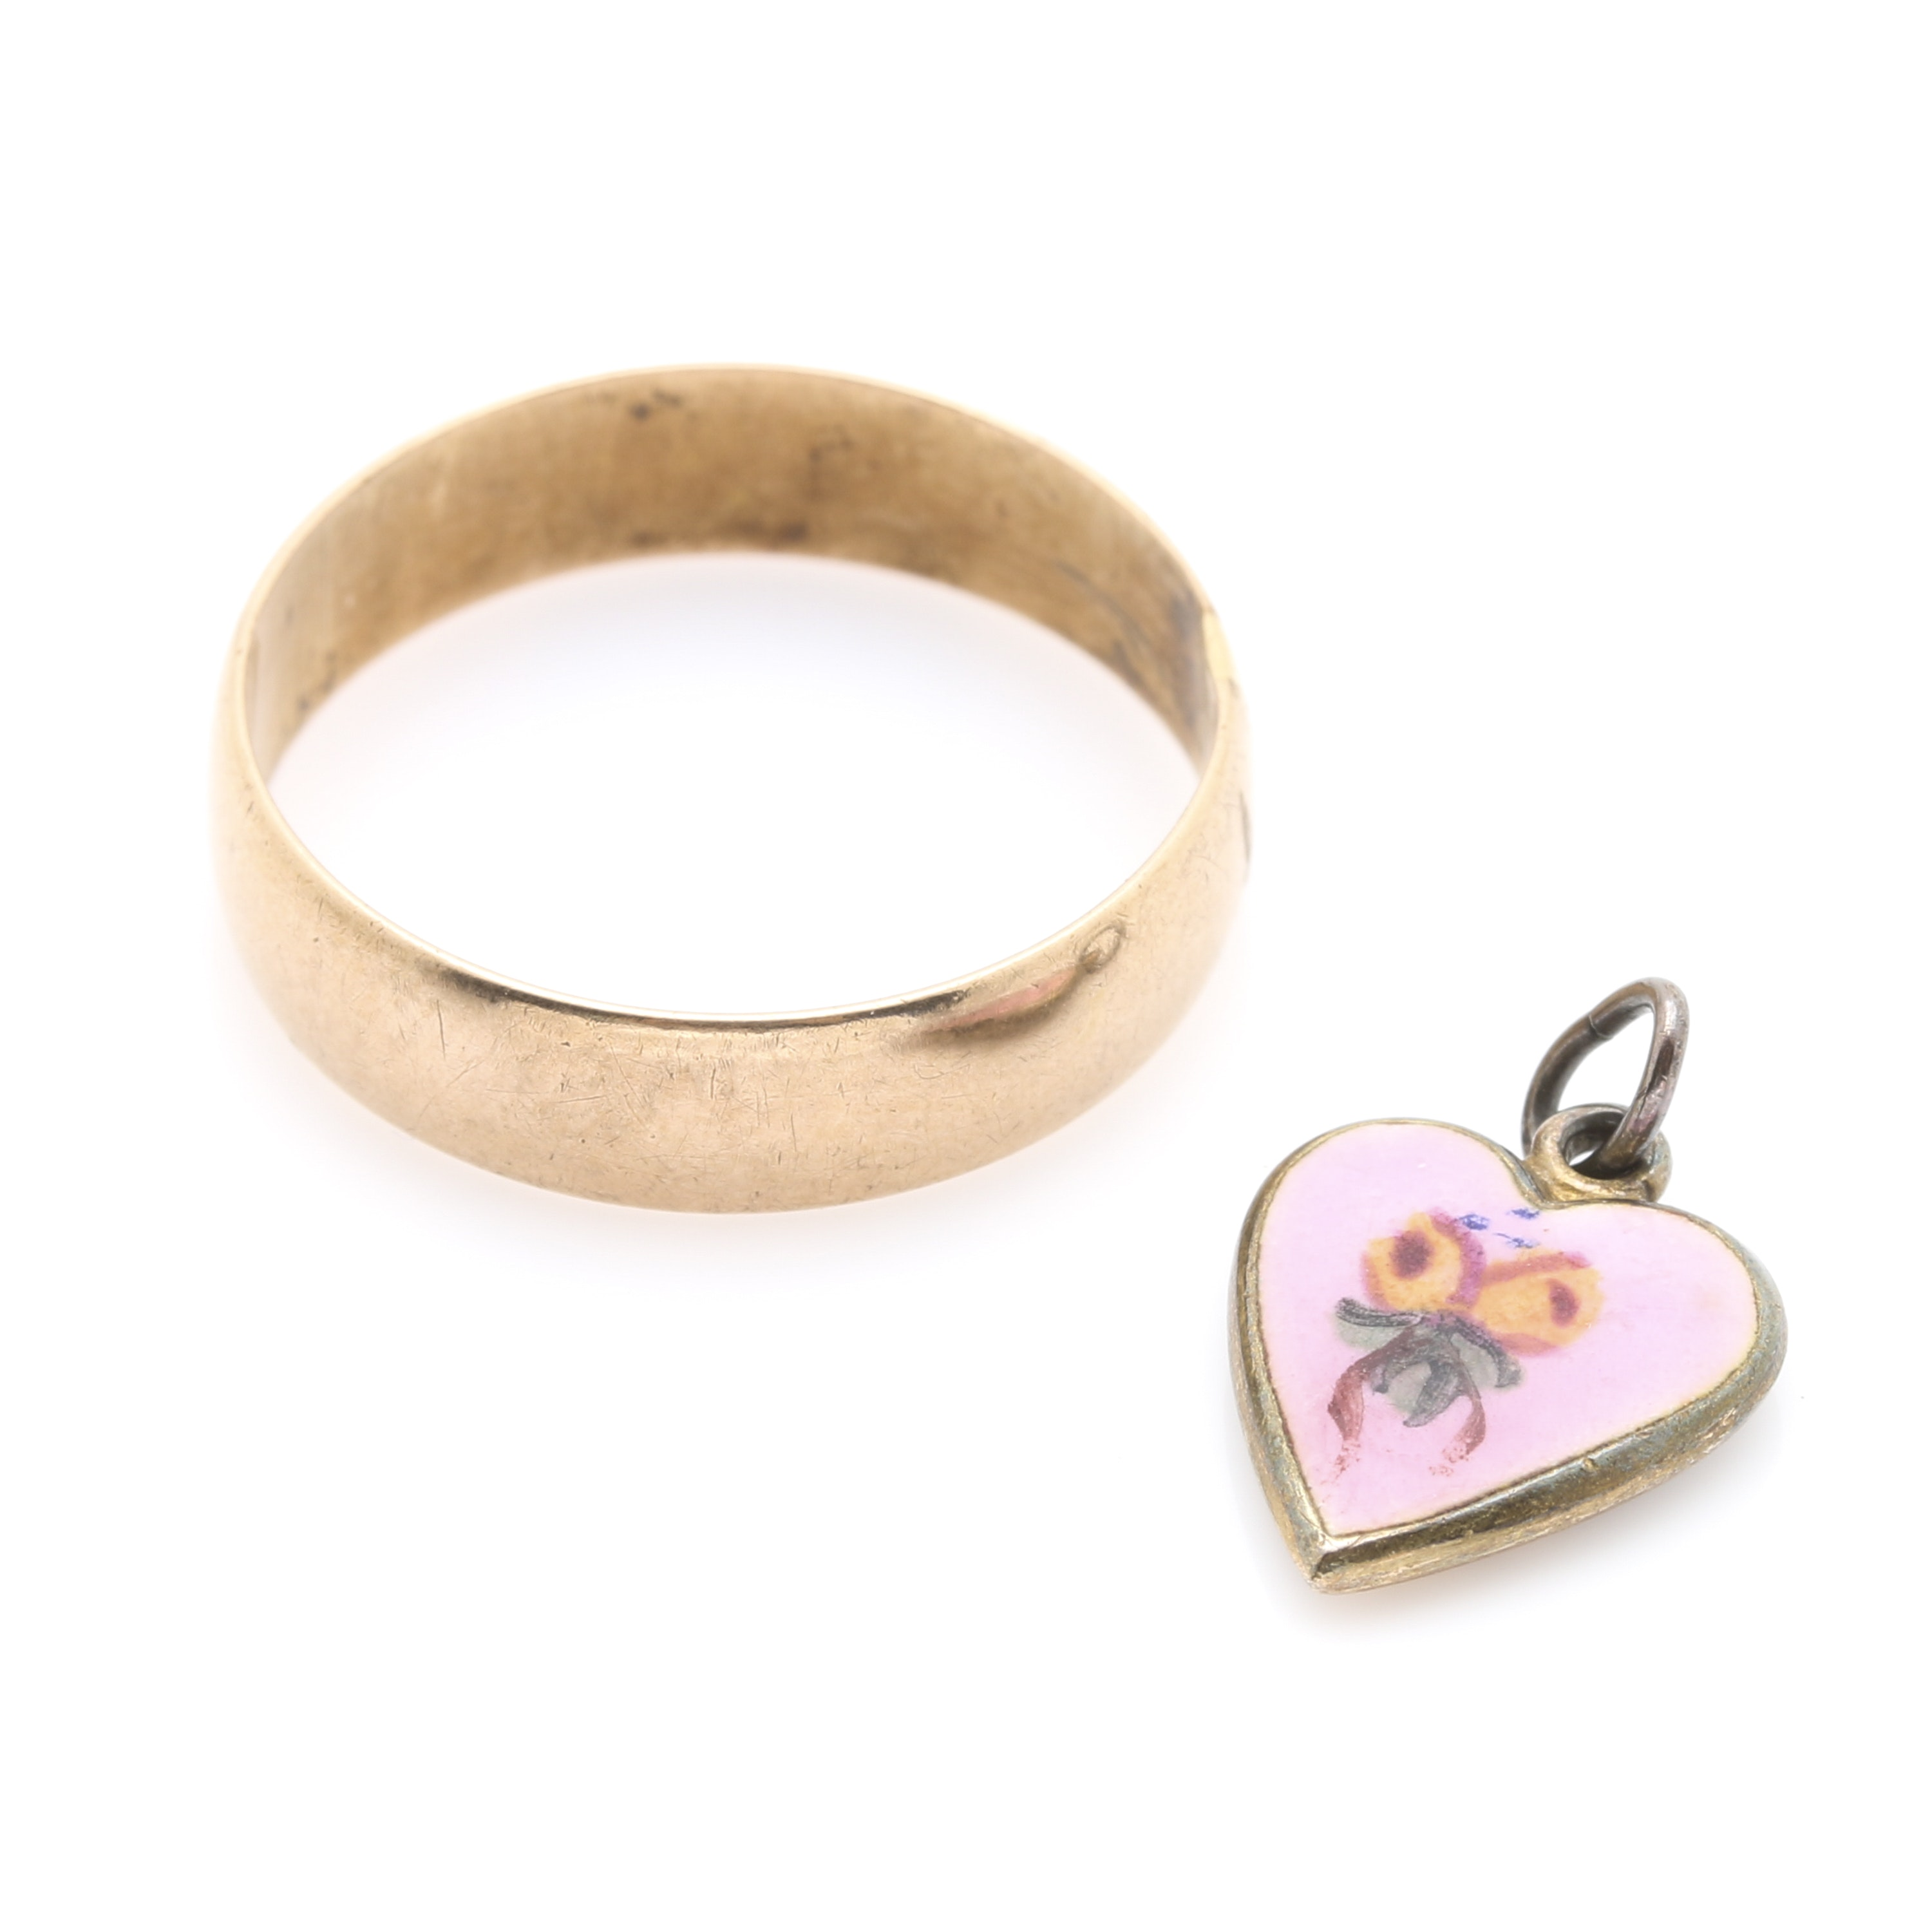 10K Yellow Gold Ring Band and Heart Charm